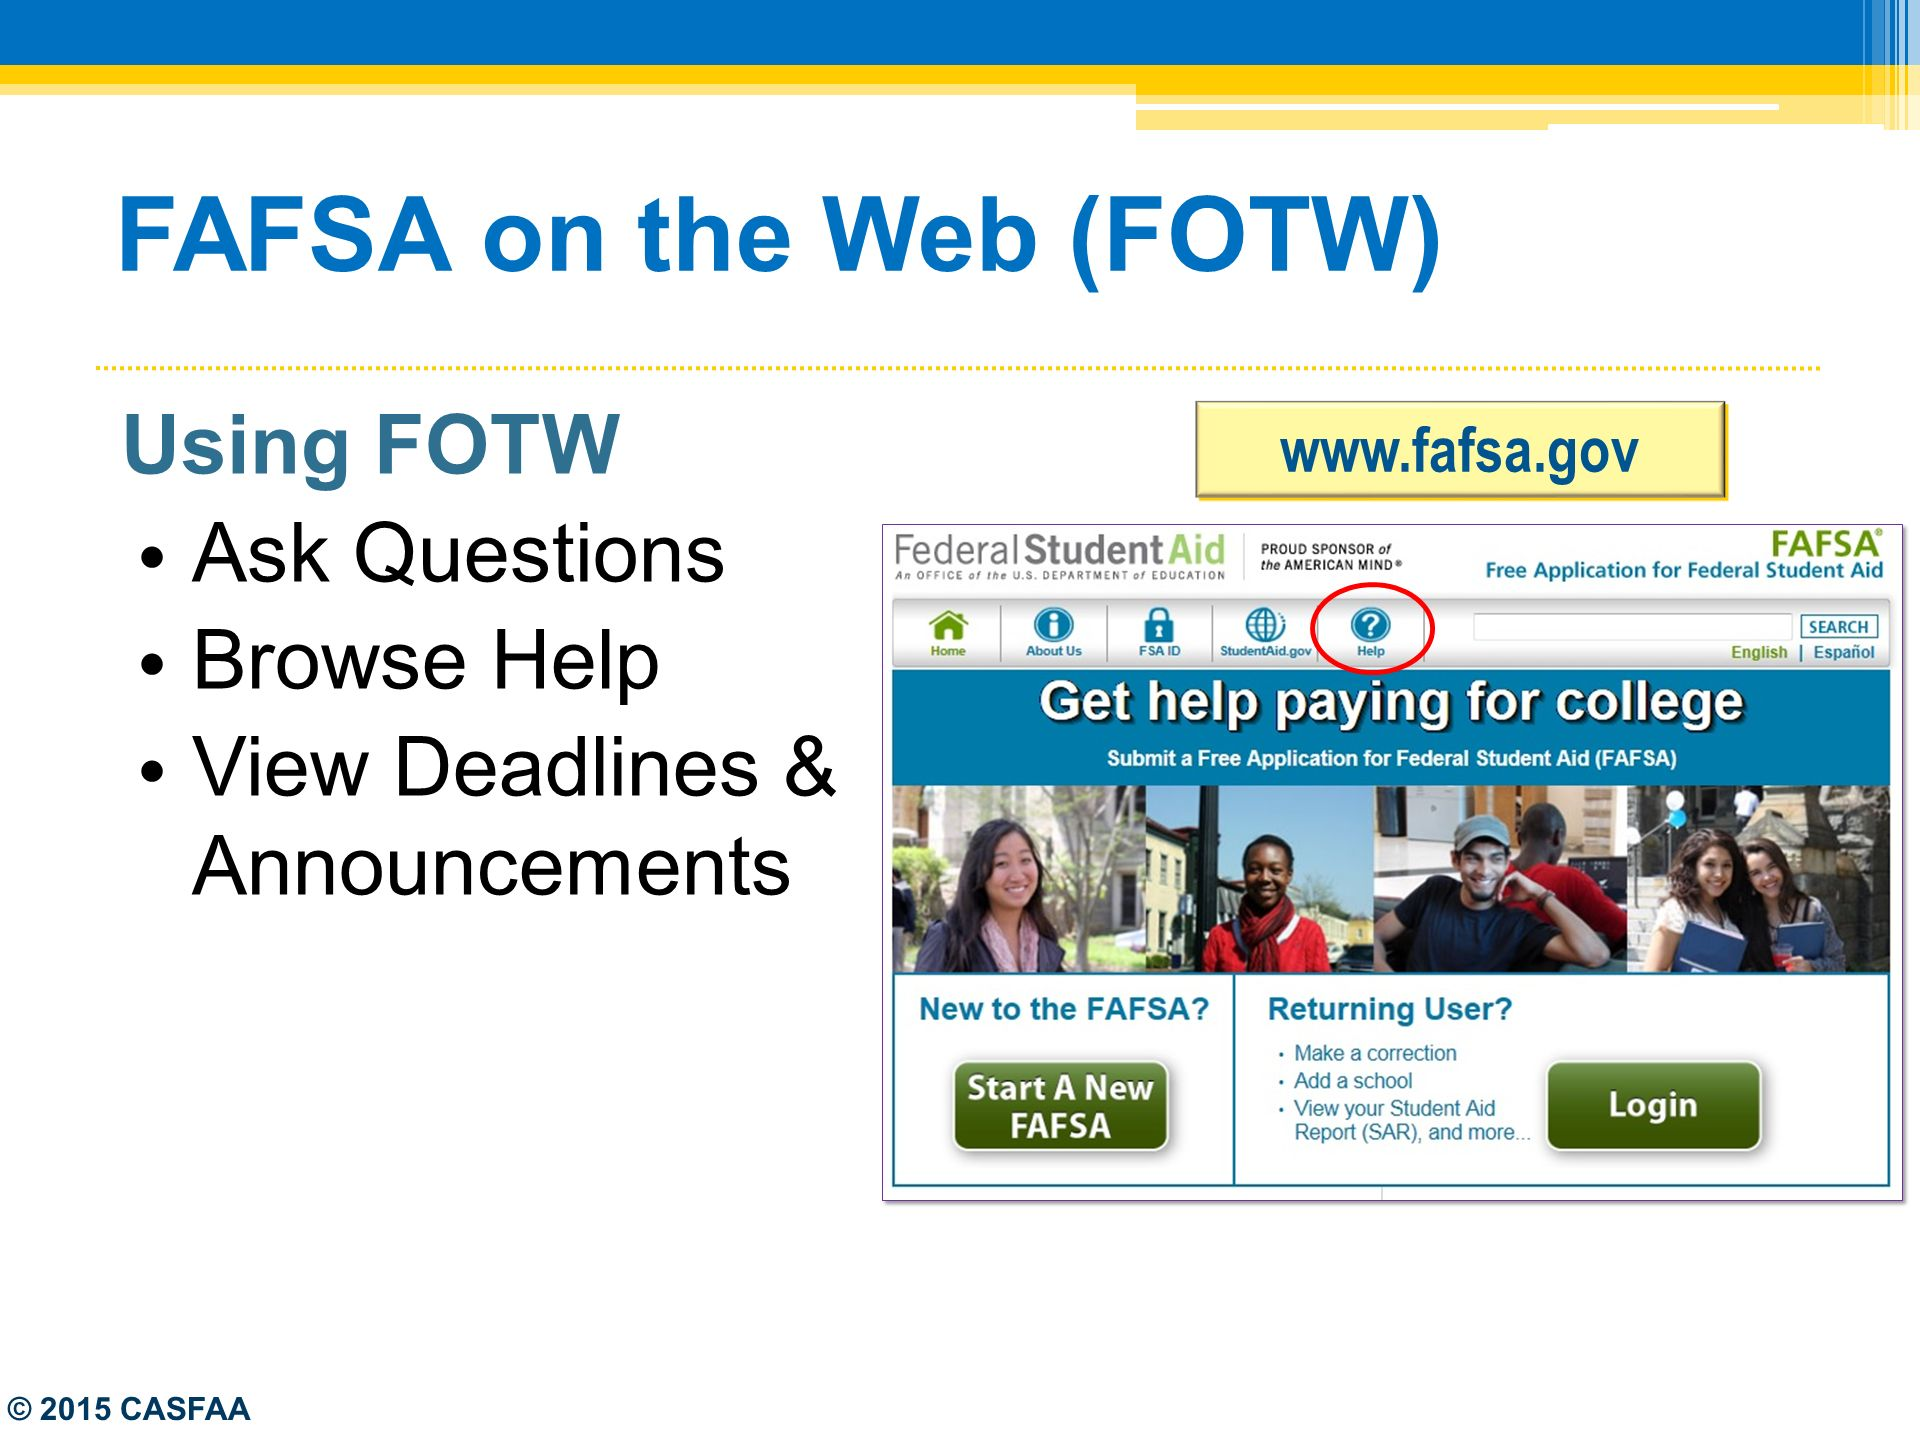 Worksheets Fafsa On The Web Worksheet federal updates the fafsa ppt download 8 fafsa